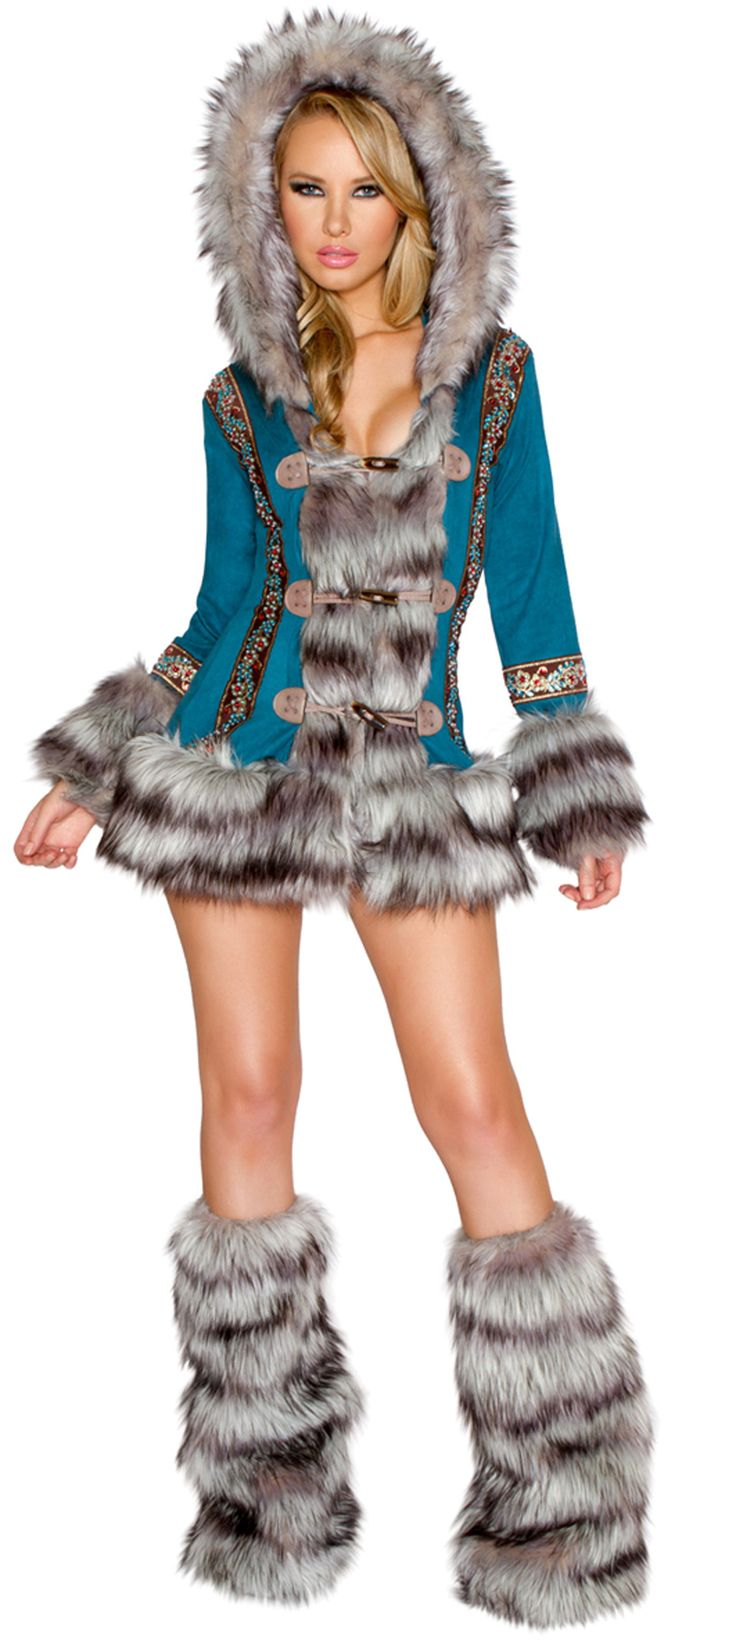 Turquoise Eskimo Costume JV-CC227 Eskimo Costume features a blue long sleeve coat with gray furry trim, multiple toggle closure and attached hood with gray fur trim. Made in USA and made of polyester, spandex and faux fur.